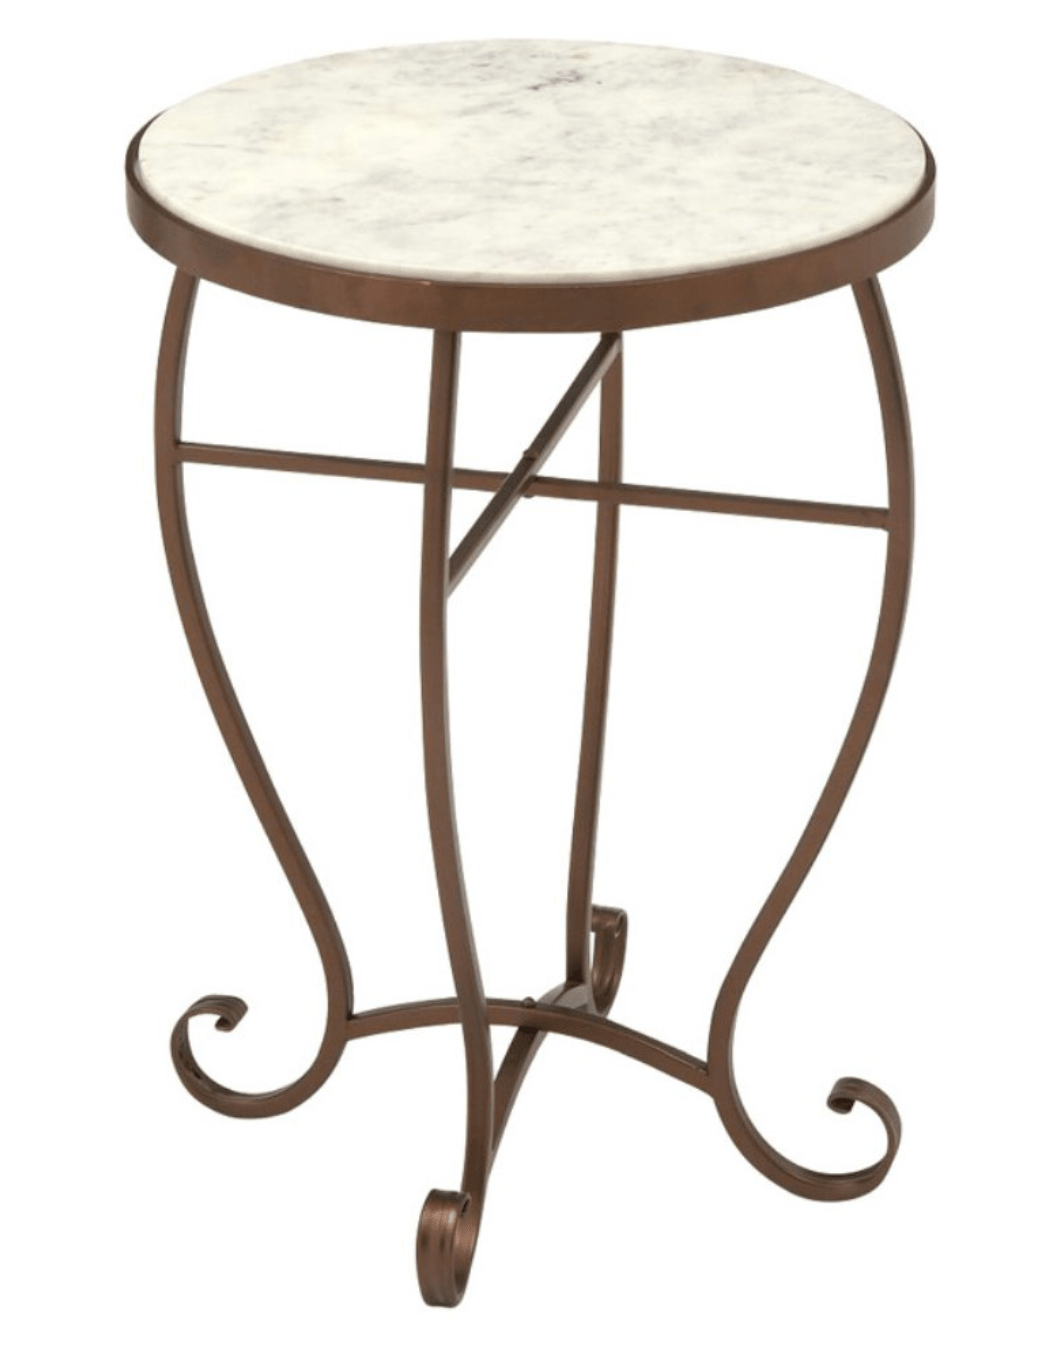 lovely small accent table for compact marble round min tables bedroom top west elm abacus floor lamp drop leaf end runners next designer unique furniture pieces solid pine keter